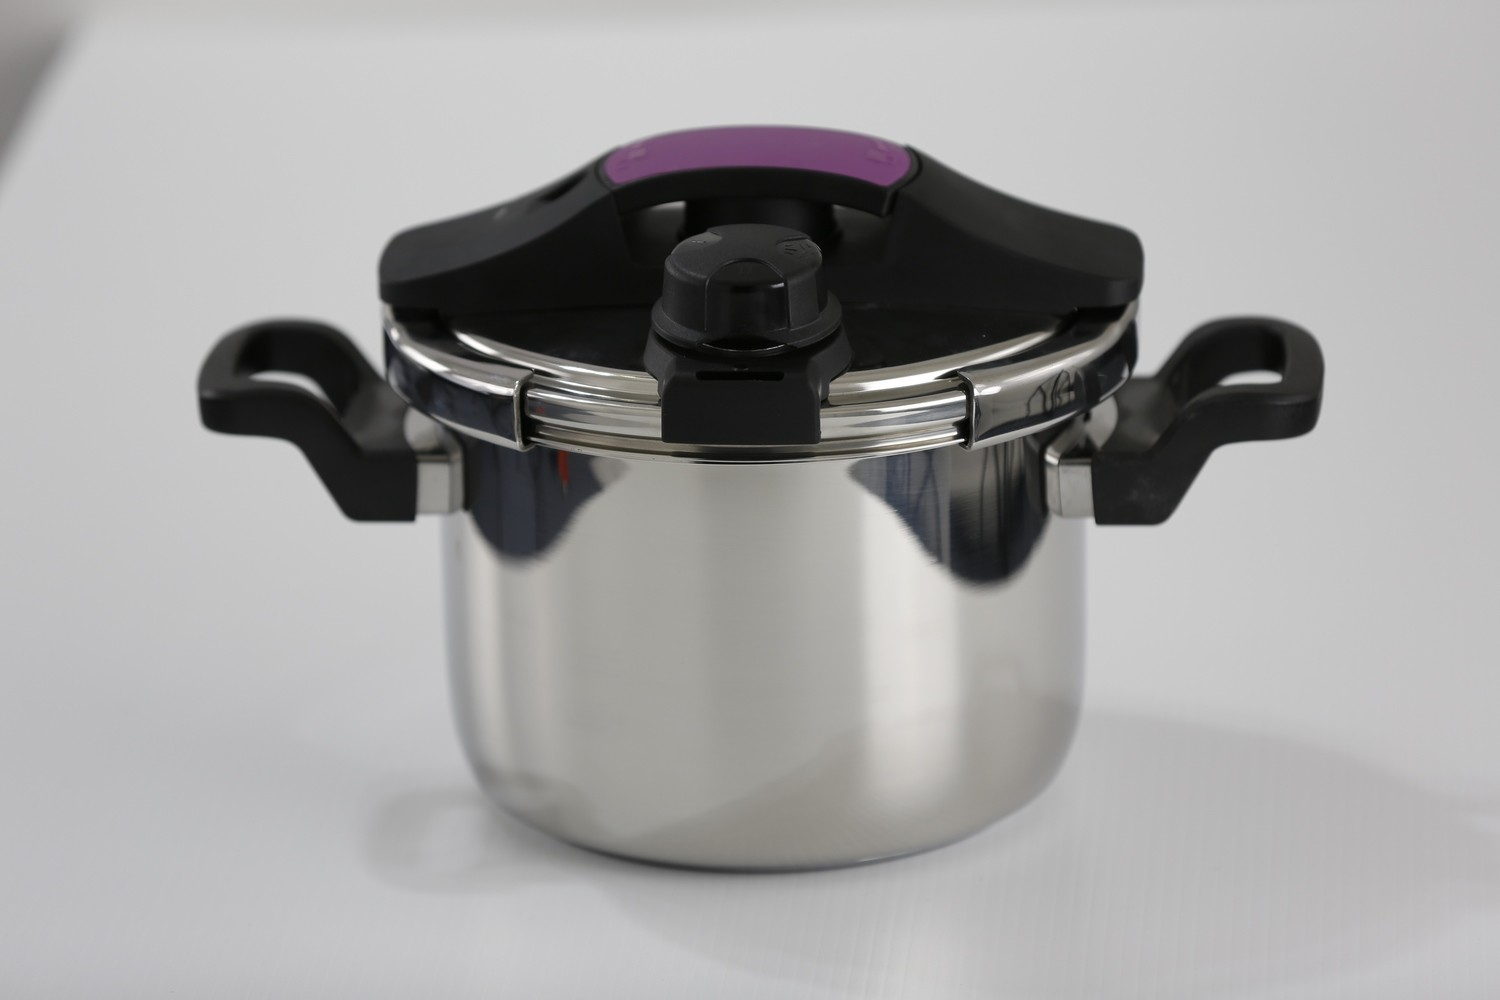 SS1 - 5.28 Qt. Stainless Steel Pressure Cooker